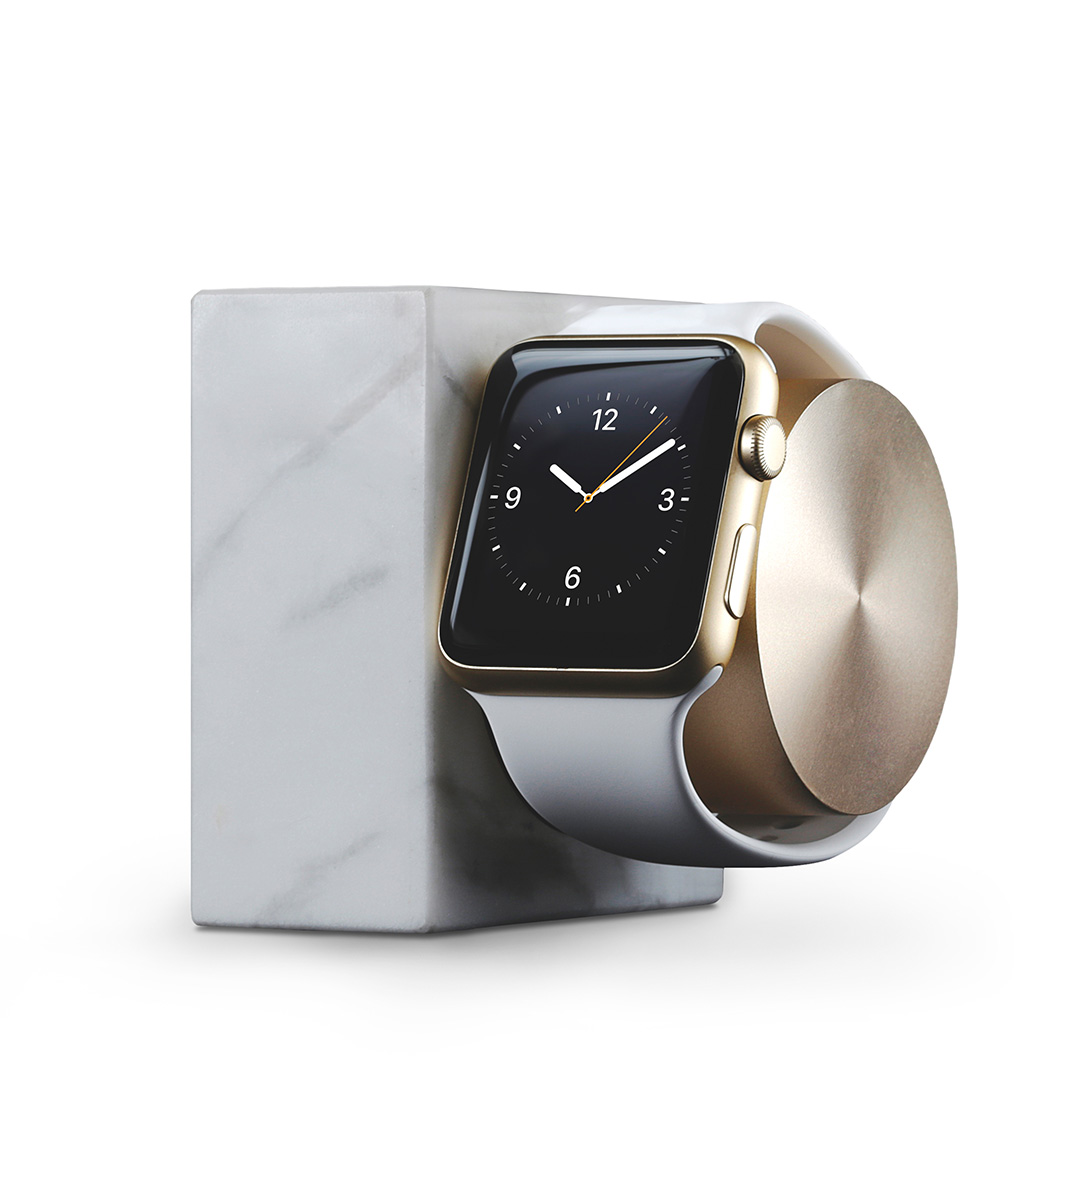 Nabíjecí stojánek pro Apple Watch 38mm / 42mm - Native Union, Dock Watch Marble White